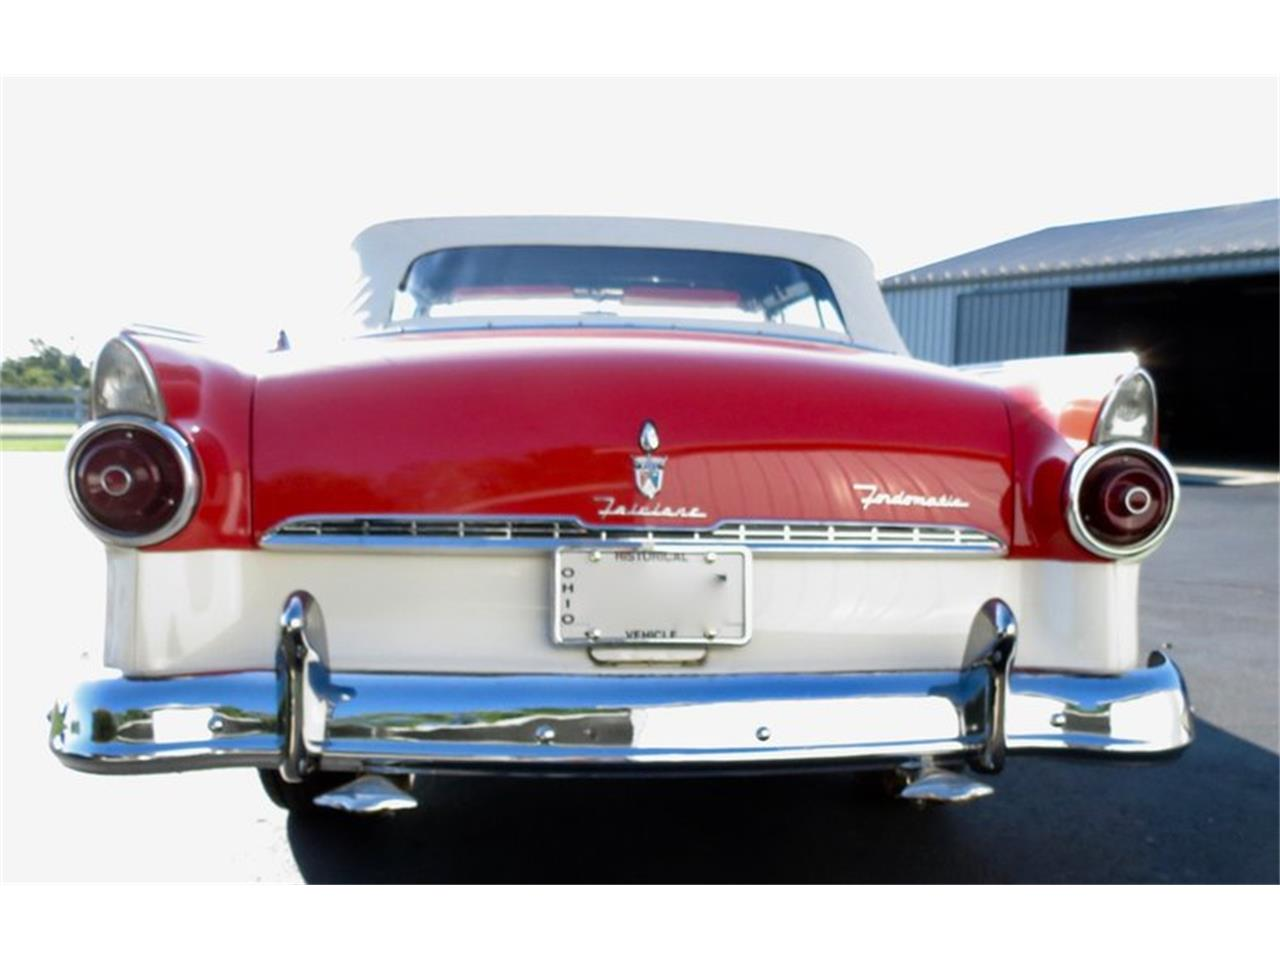 Large Picture of '55 Ford Fairlane - $38,500.00 - QU8Q